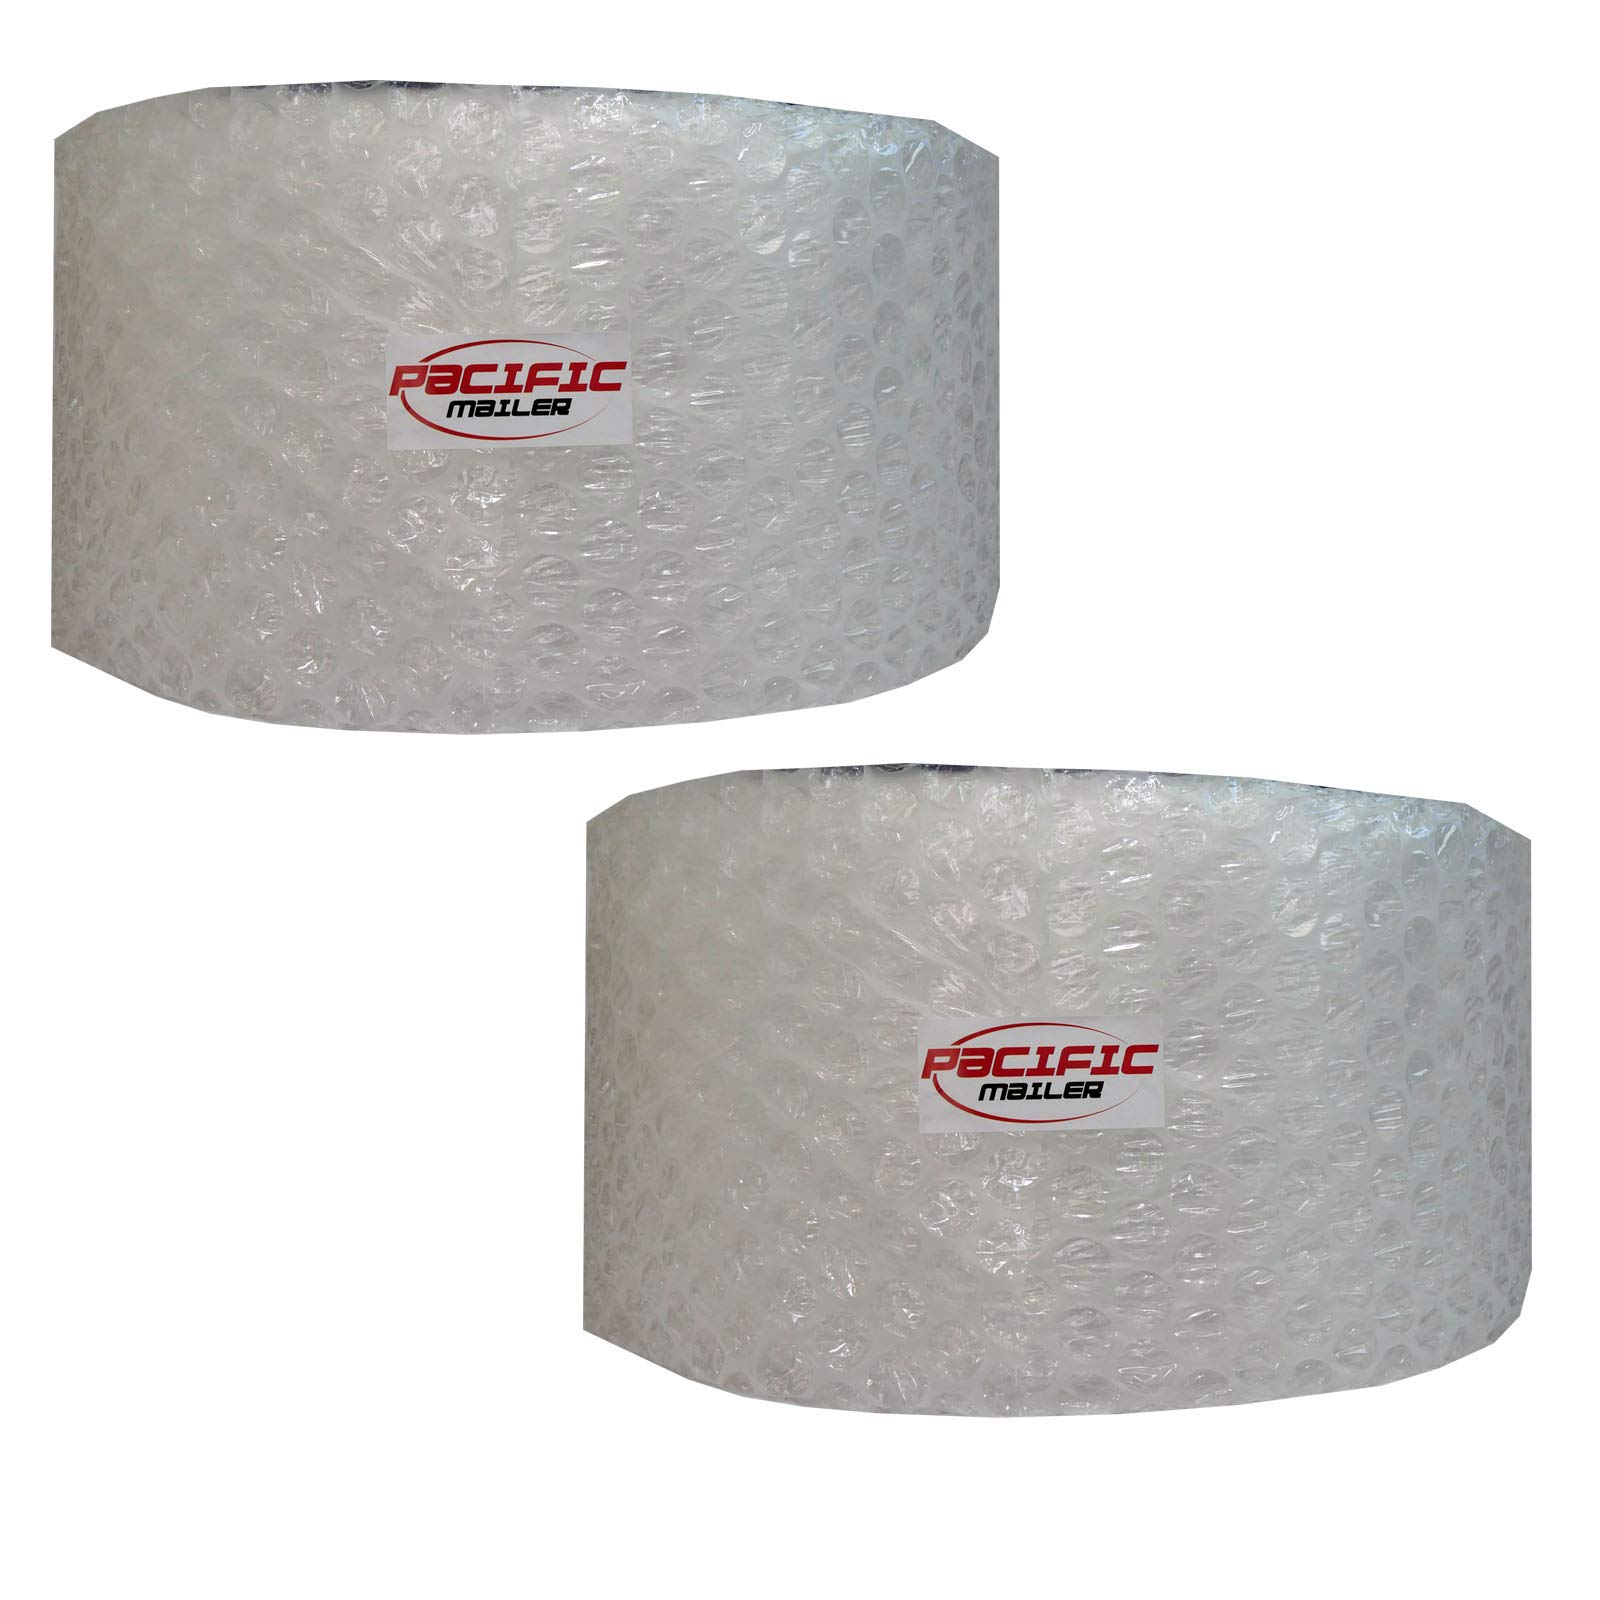 PacificMailer Bubble Cushioning Wrap Roll 12'' x 250' x 1/2'' Large, Perforated Every 12'' for Packaging, Shipping, Mailing by PacificMailer (Image #1)